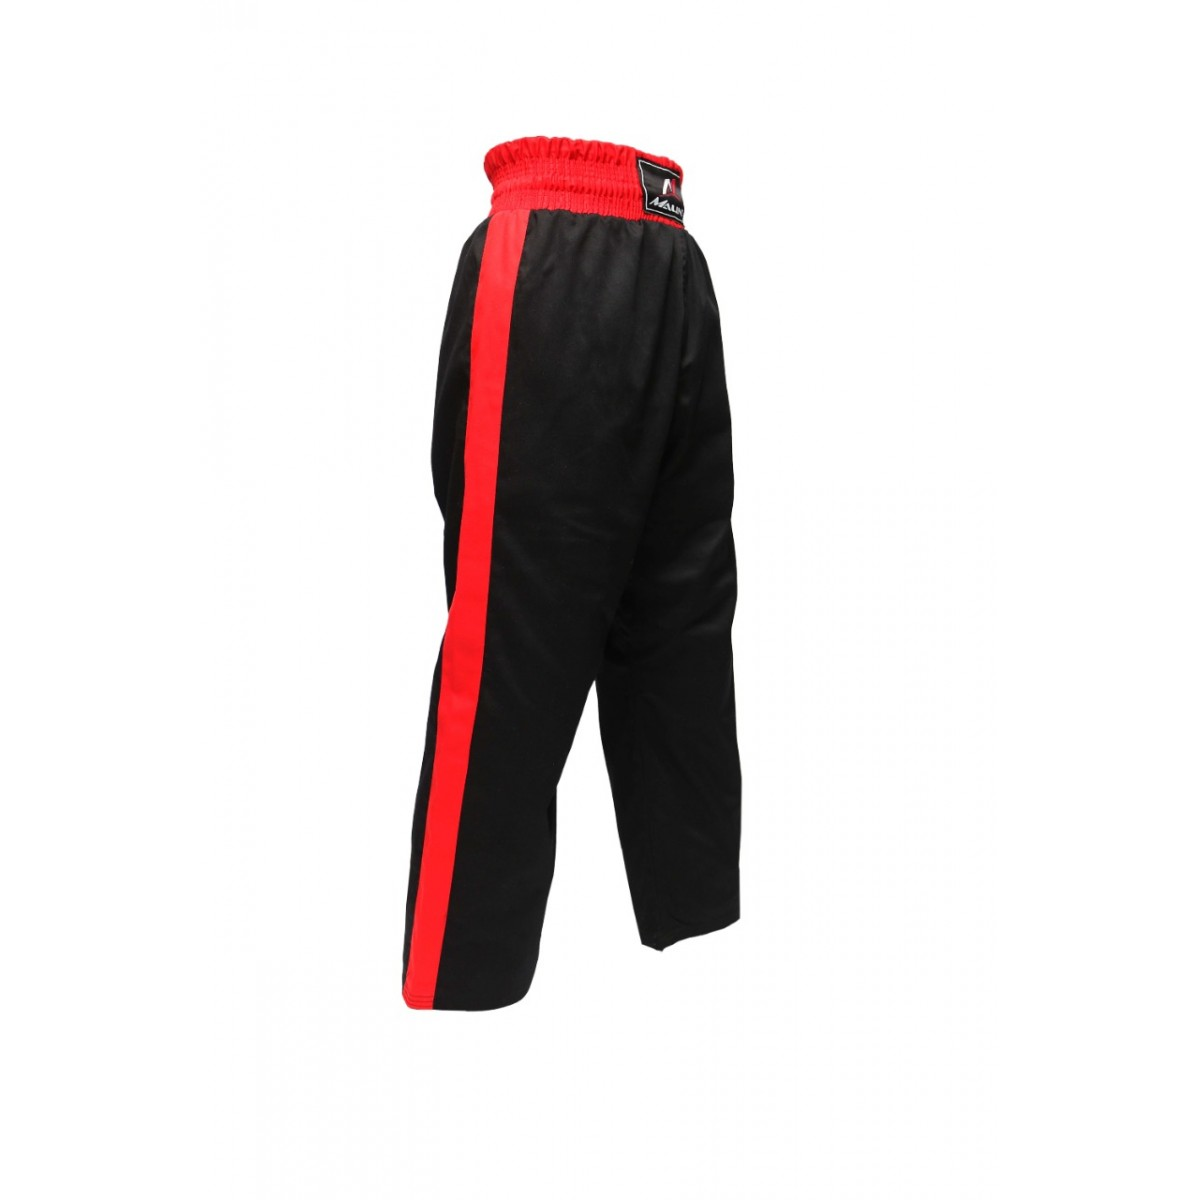 Malino Star Kickboxing Trouser Mix Martial Arts Training Poly Cotton Trouser Black Red